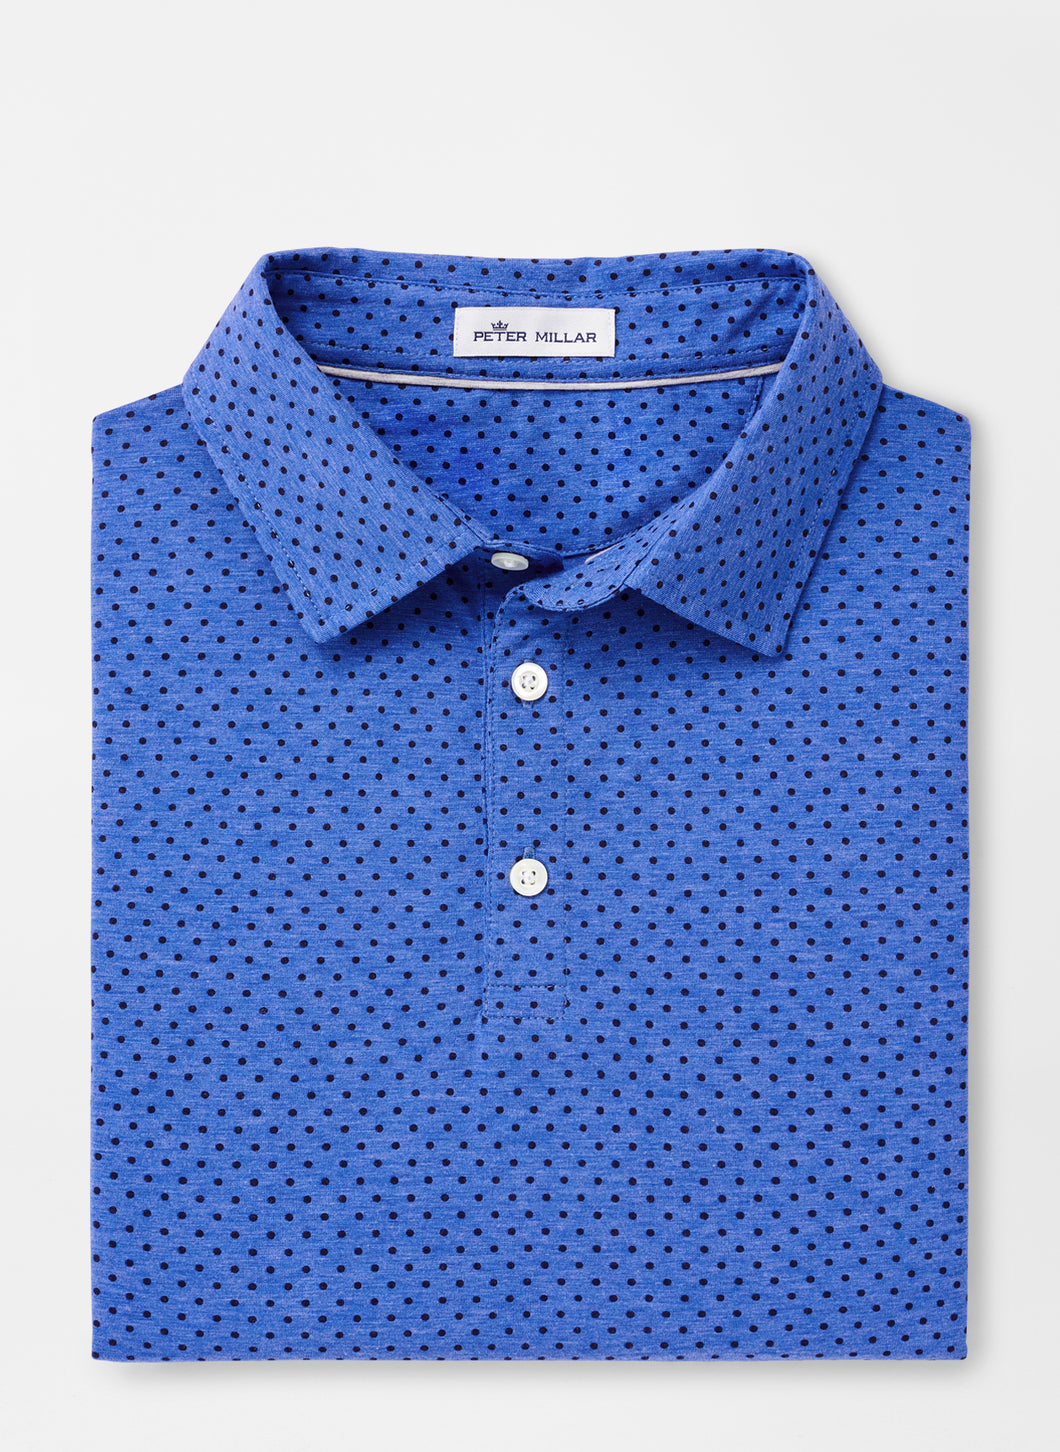 Peter Millar Crown Soft Dot Polo in Blue Lapis